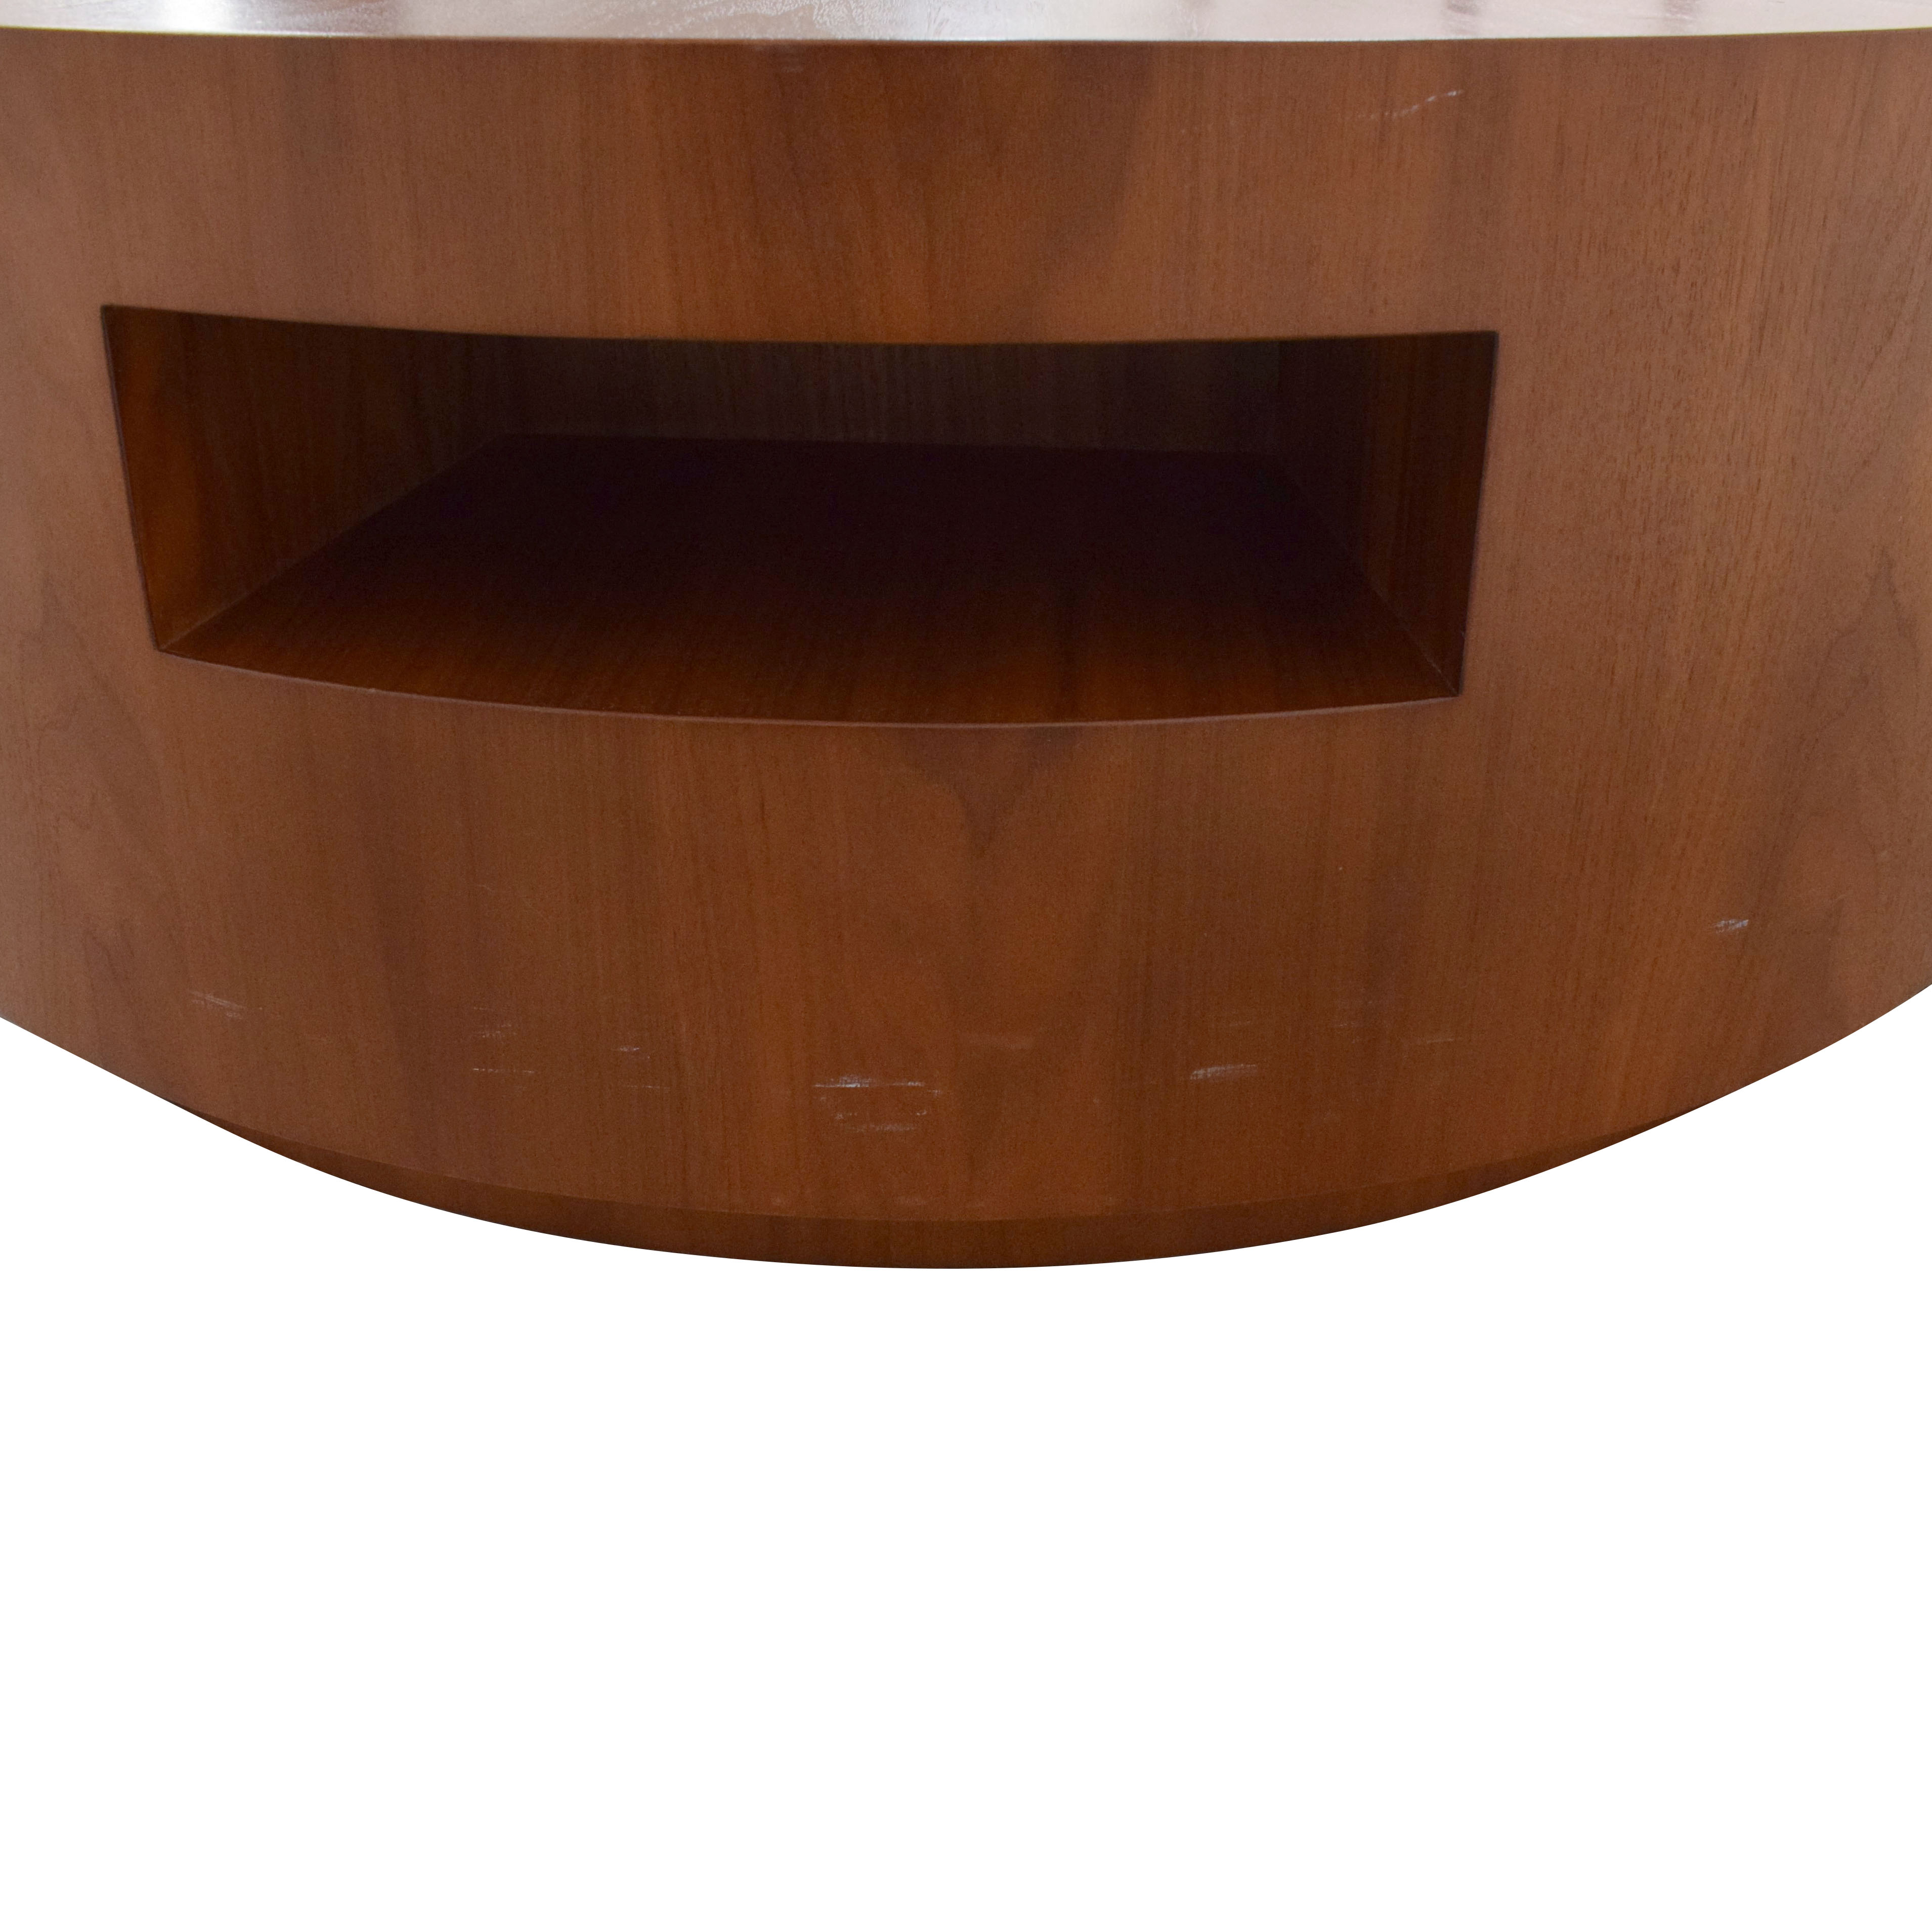 Crate & Barrel Crate & Barrel Tambe Coffee Table dimensions